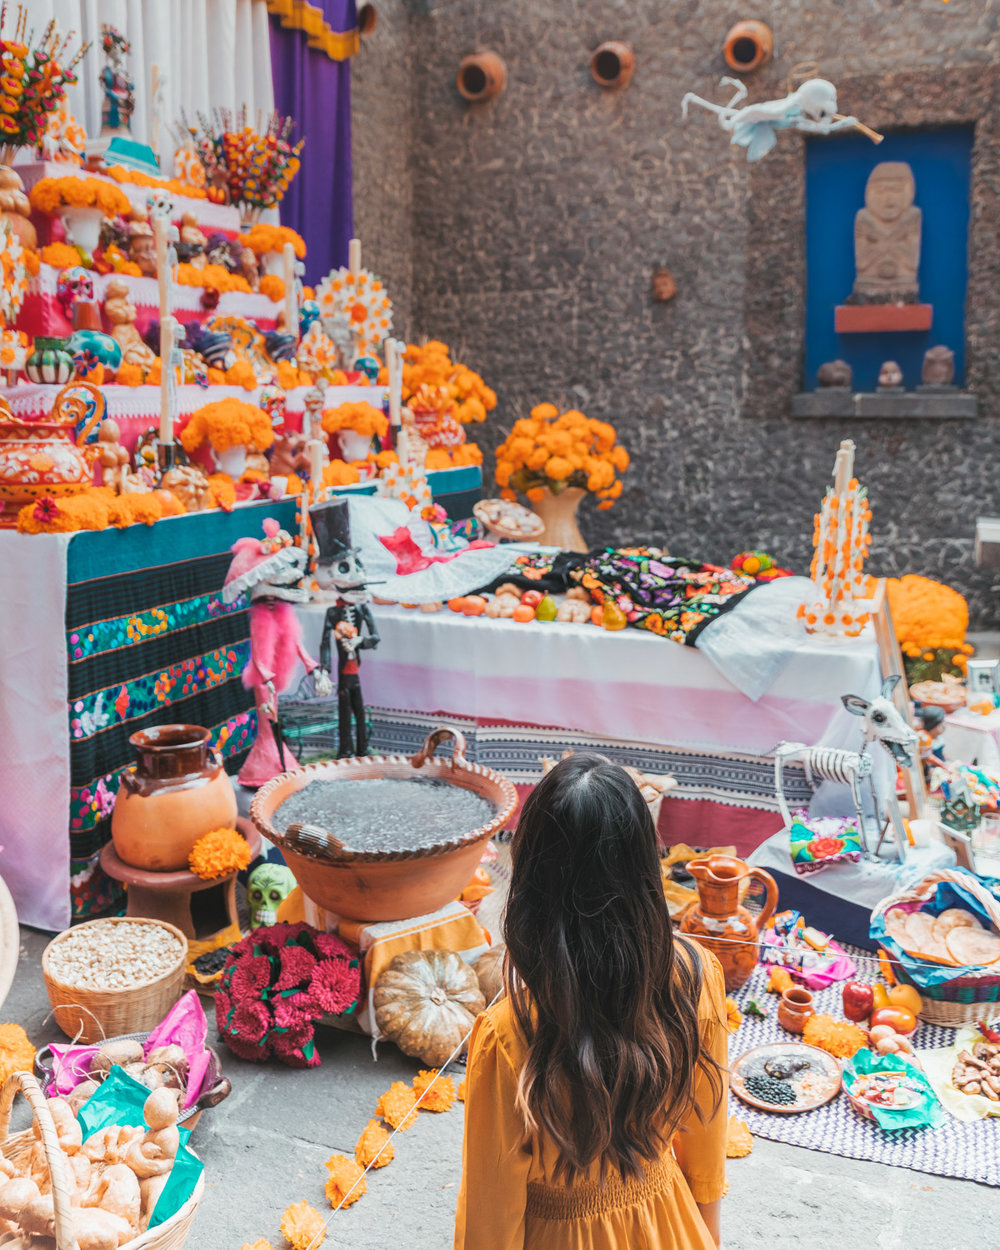 Frida Kahlo's ofrenda // Mexico City Day of the Dead Parade // What to Do In Mexico City for Day of the Dead // www.readysetjetset.net #readysetjetset #mexicocity #dayofthedead #traveltips #blogtips